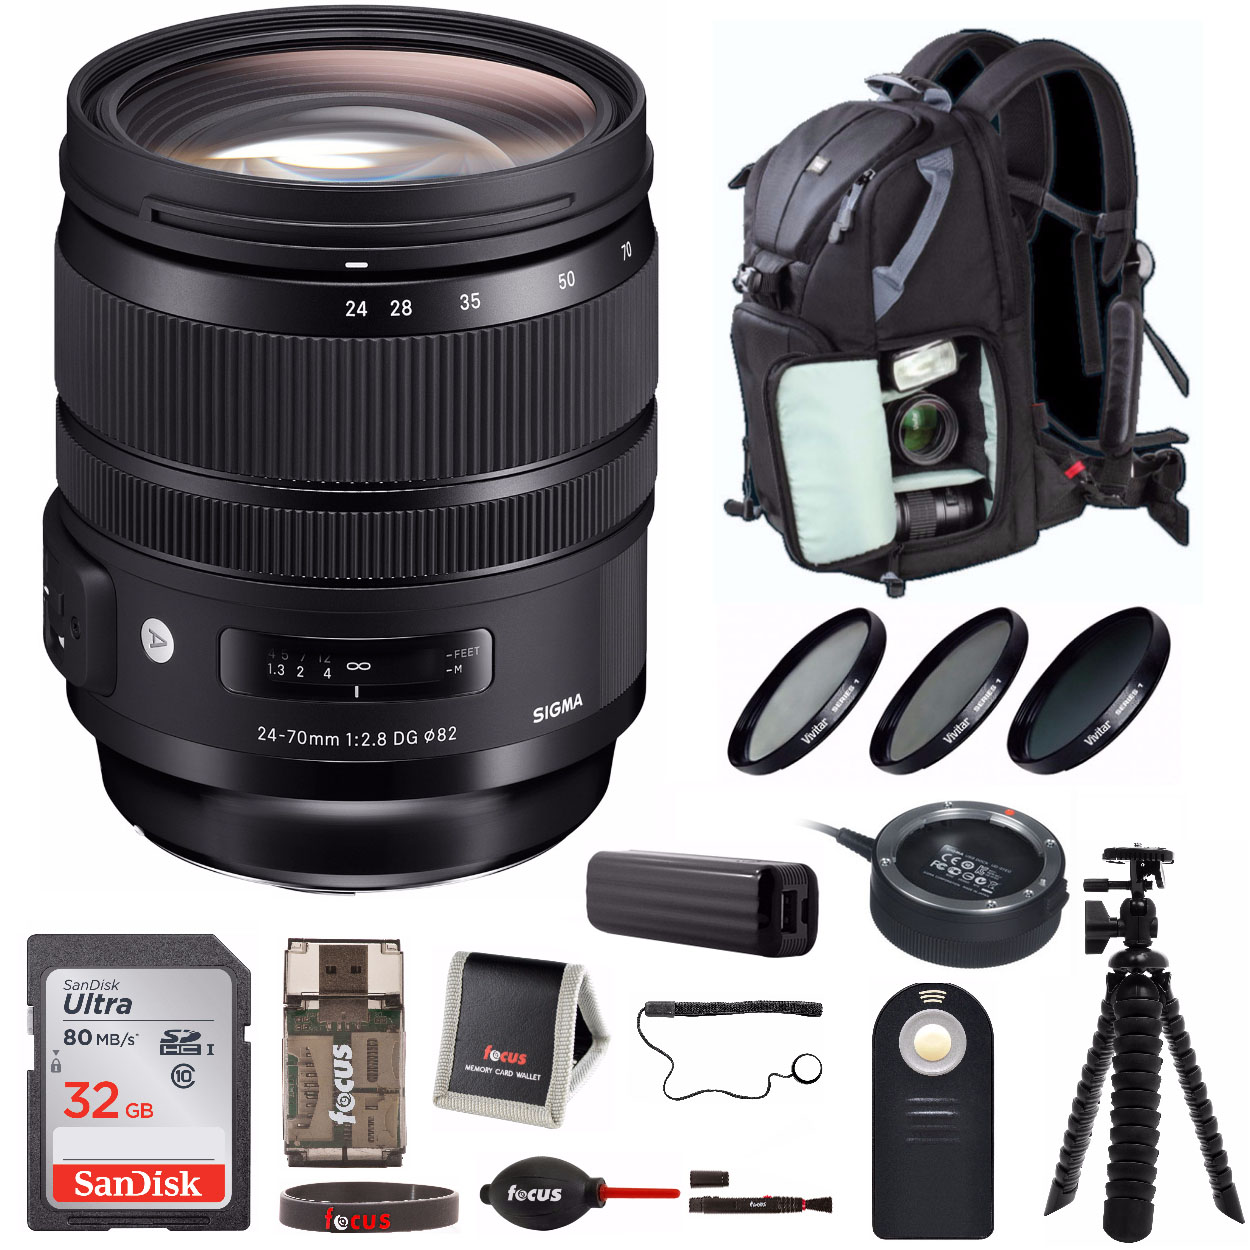 Sigma 24-70mm f2.8 DG OS HSM ART Lens for Nikon with USB Dock and SD Card Bundle